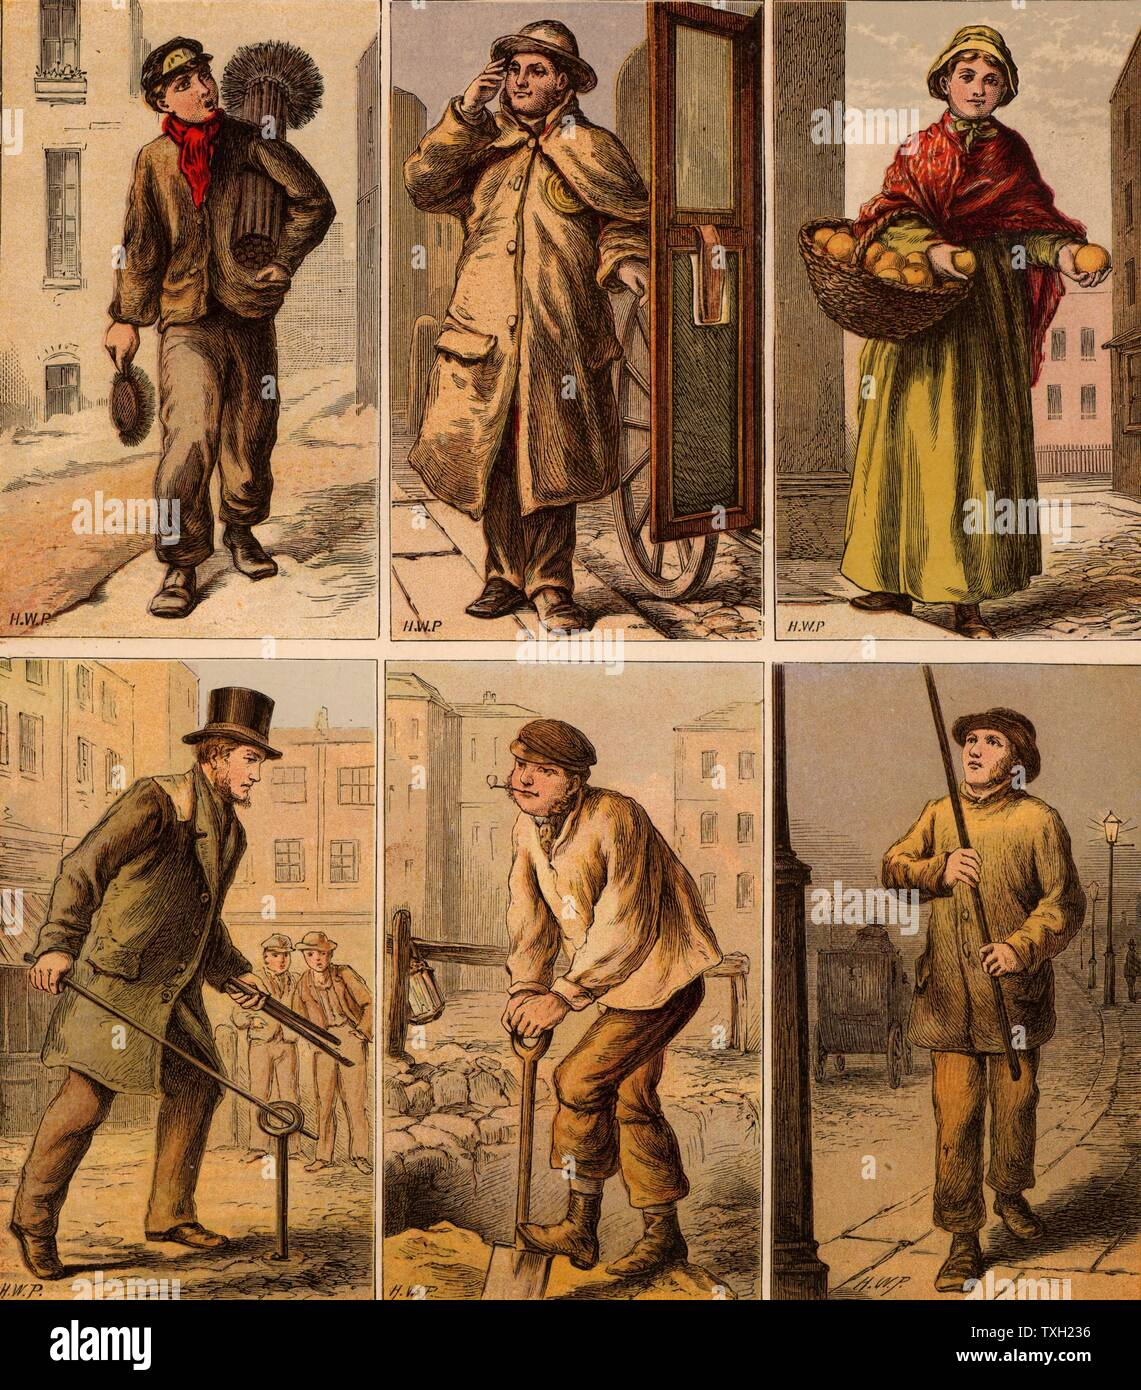 London street scenes. Boy Chimney Sweep: Cab driver: Orange Seller: Water Board Man turning a stopcock: Digging up the road: Lamplighter lighting a gas street lamp. Illustrations by Horace William Petherick (1839-1919) for a children's book published London c1875.  Chromolithograph. - Stock Image